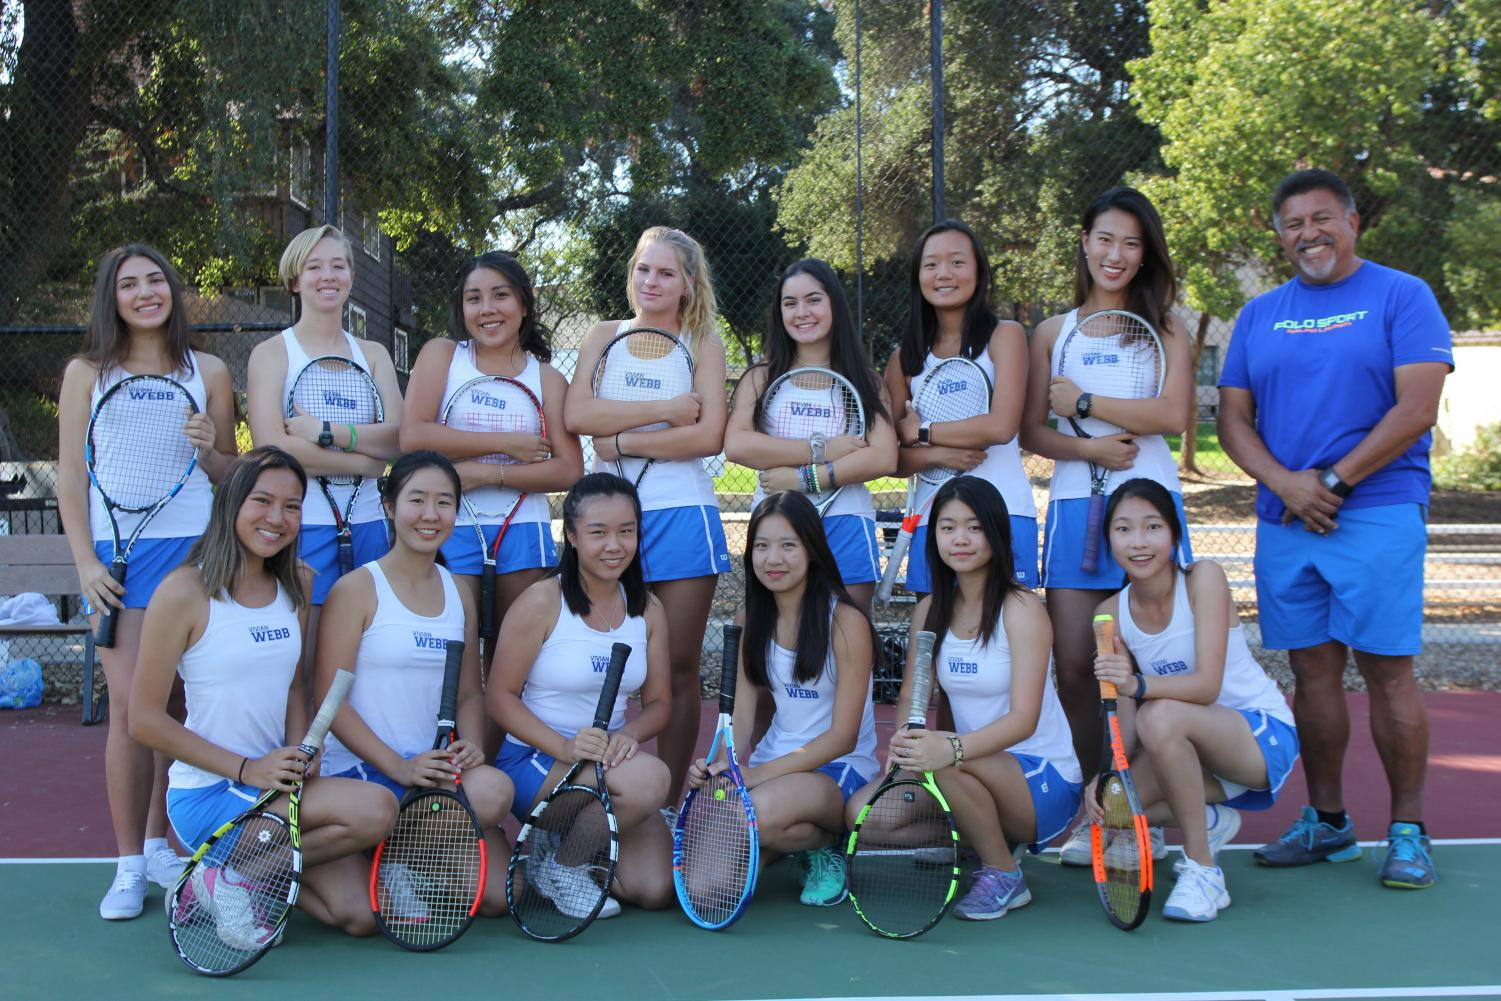 Glancing back: A photo of the girl's tennis team. Graphic courtesy of Elena Monroe ('18)